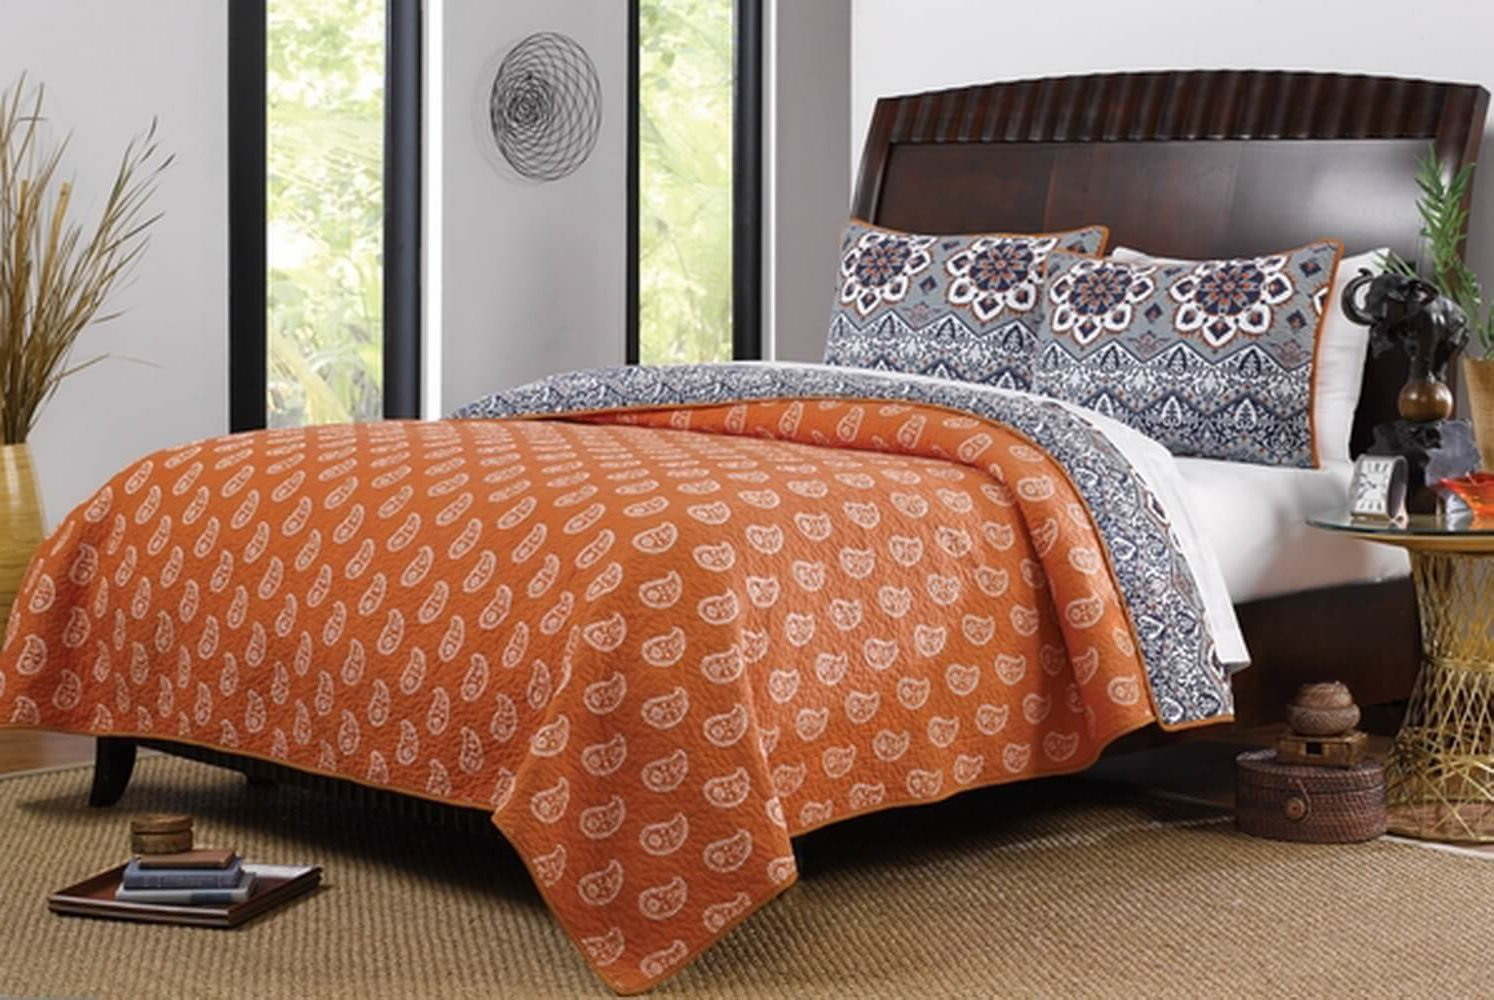 Brown and orange bedding - Boho Chic Moroccan Paisley Pattern Grey Orange Cotton 3 Piece Full Queen Size Quilt Bedding